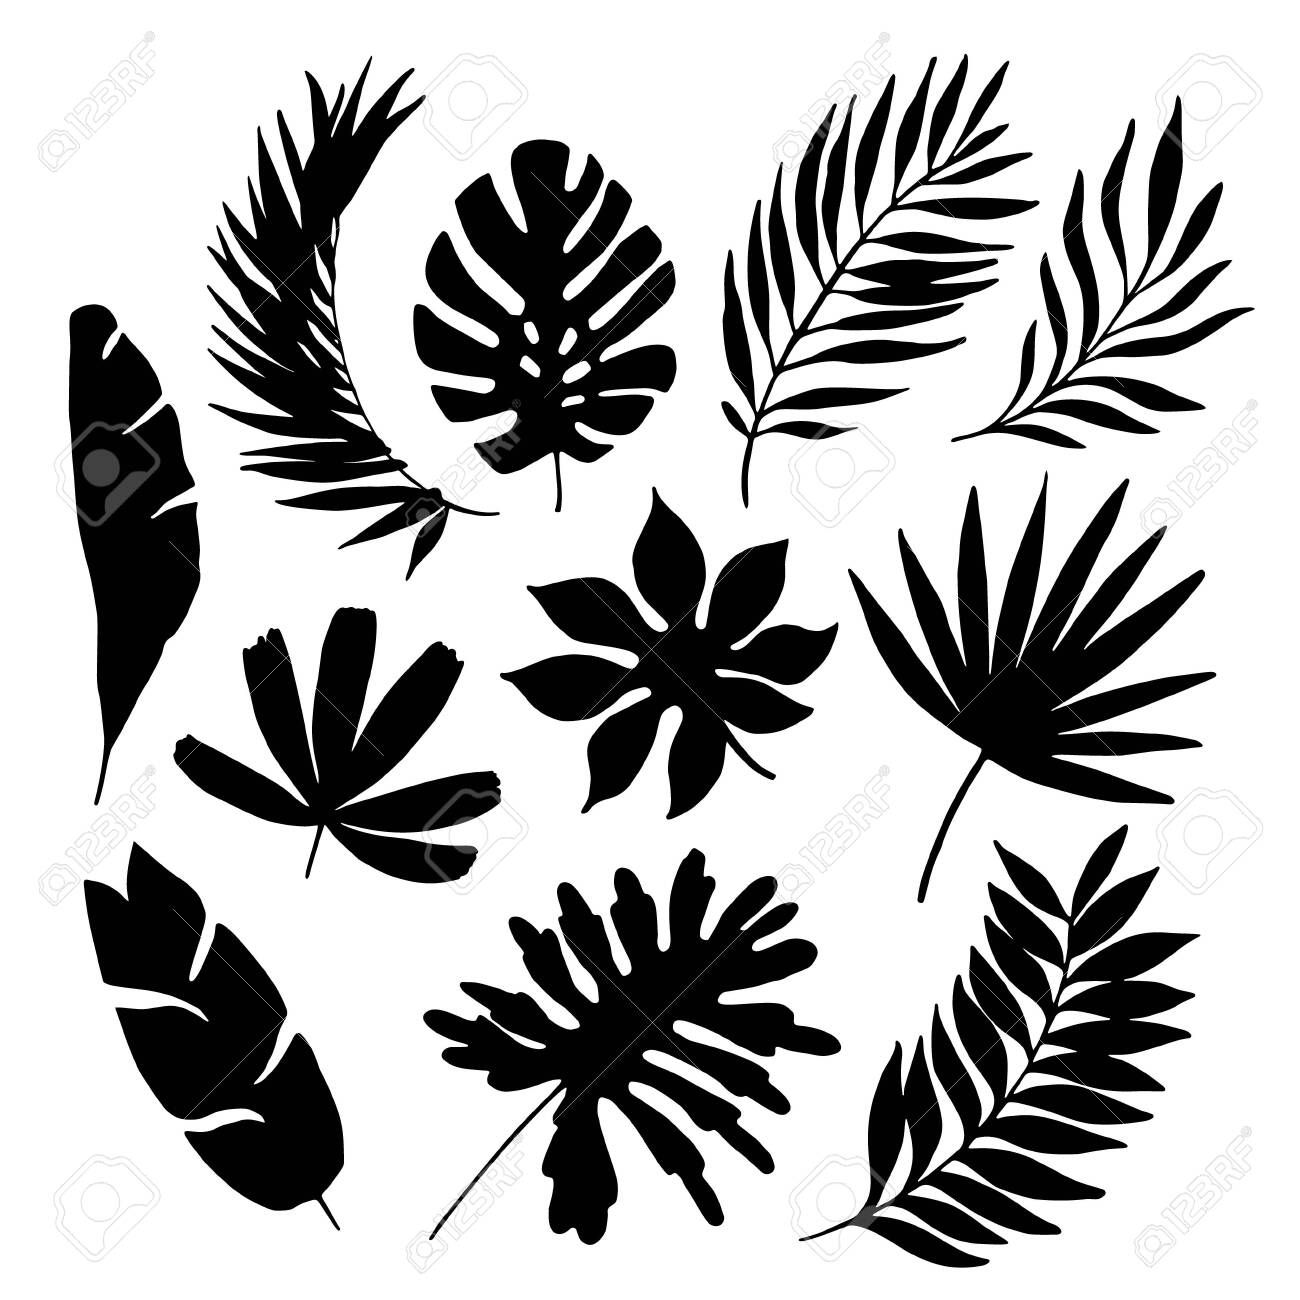 Tropical Leaf Silhouette Elements Set Isolated On White Background In 2020 Leaf Silhouette Leaf Illustration Black And White Leaves No physical item will be shipped. pinterest